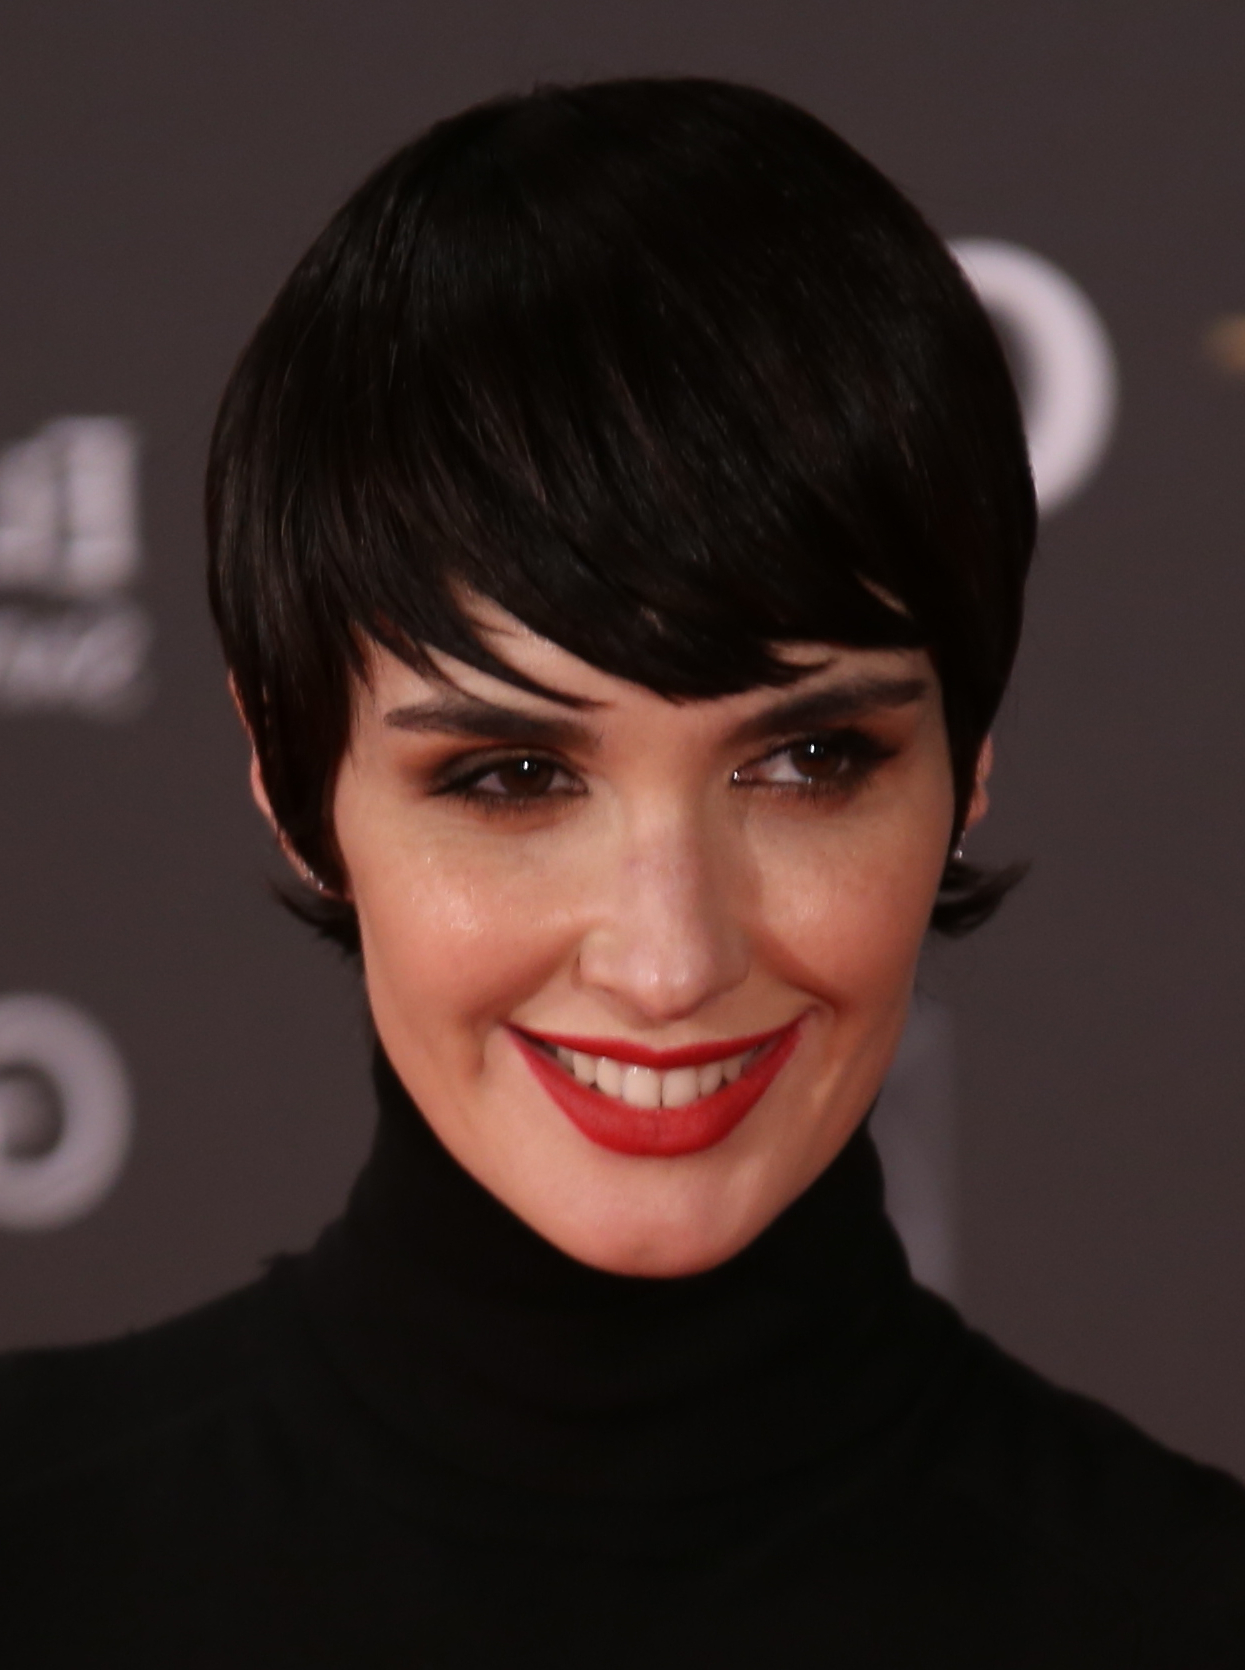 Favorite Horizontally Oriented Bangs Bob Haircuts With File:paz Vega En Los Premios Goya 2017 (Cropped) – Wikimedia Commons (View 15 of 20)